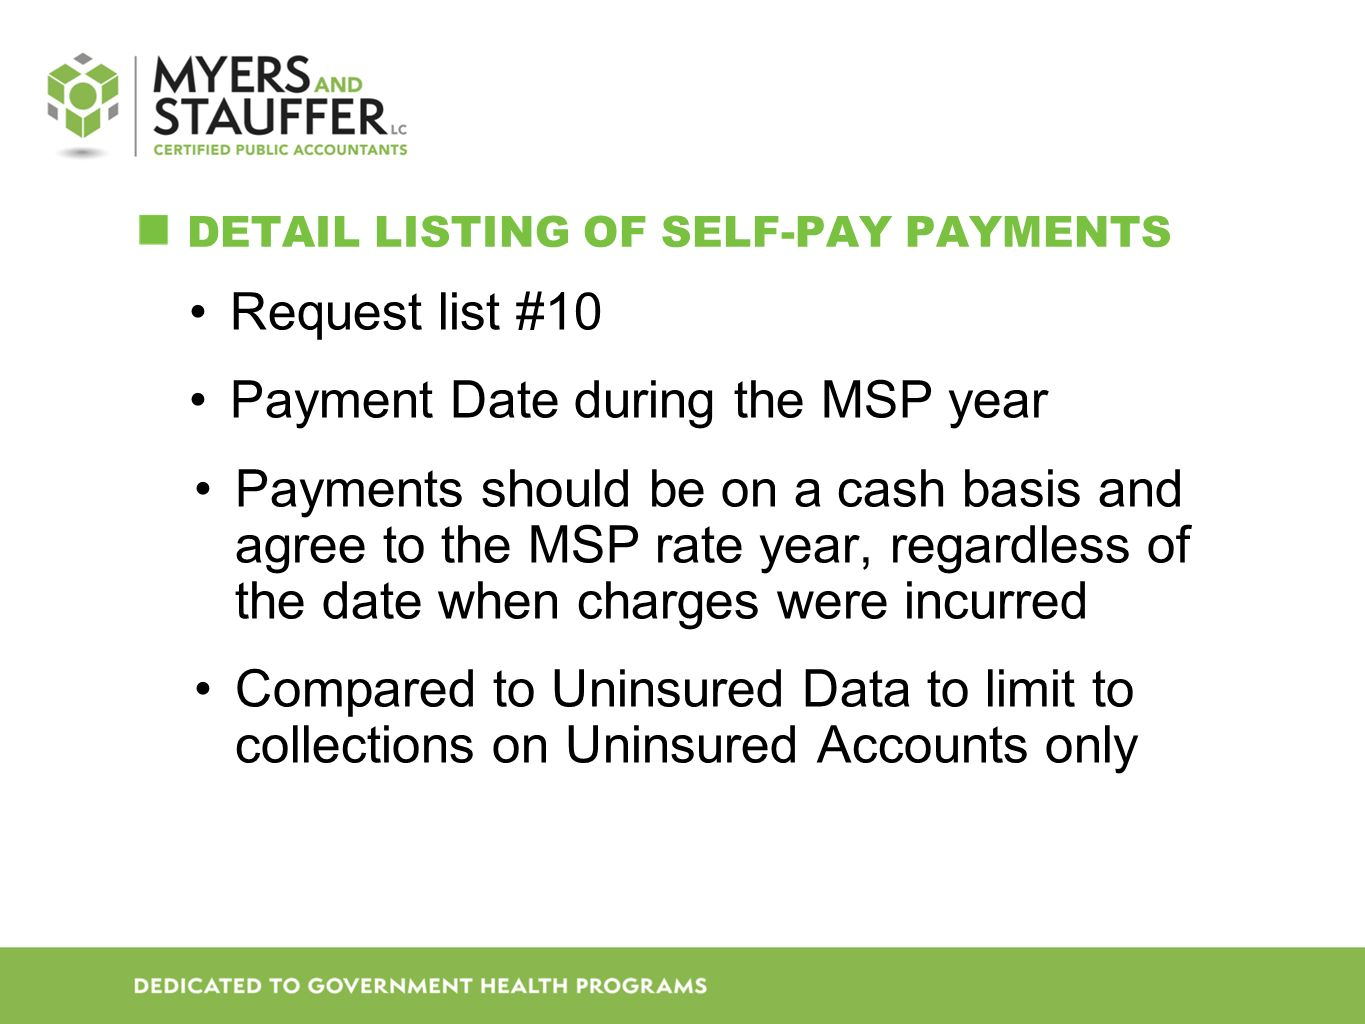 DETAIL LISTING OF SELF-PAY PAYMENTS Request list #10 Payment Date during the MSP year Payments should be on a cash basis and agree to the MSP rate year, regardless of the date when charges were incurred Compared to Uninsured Data to limit to collections on Uninsured Accounts only